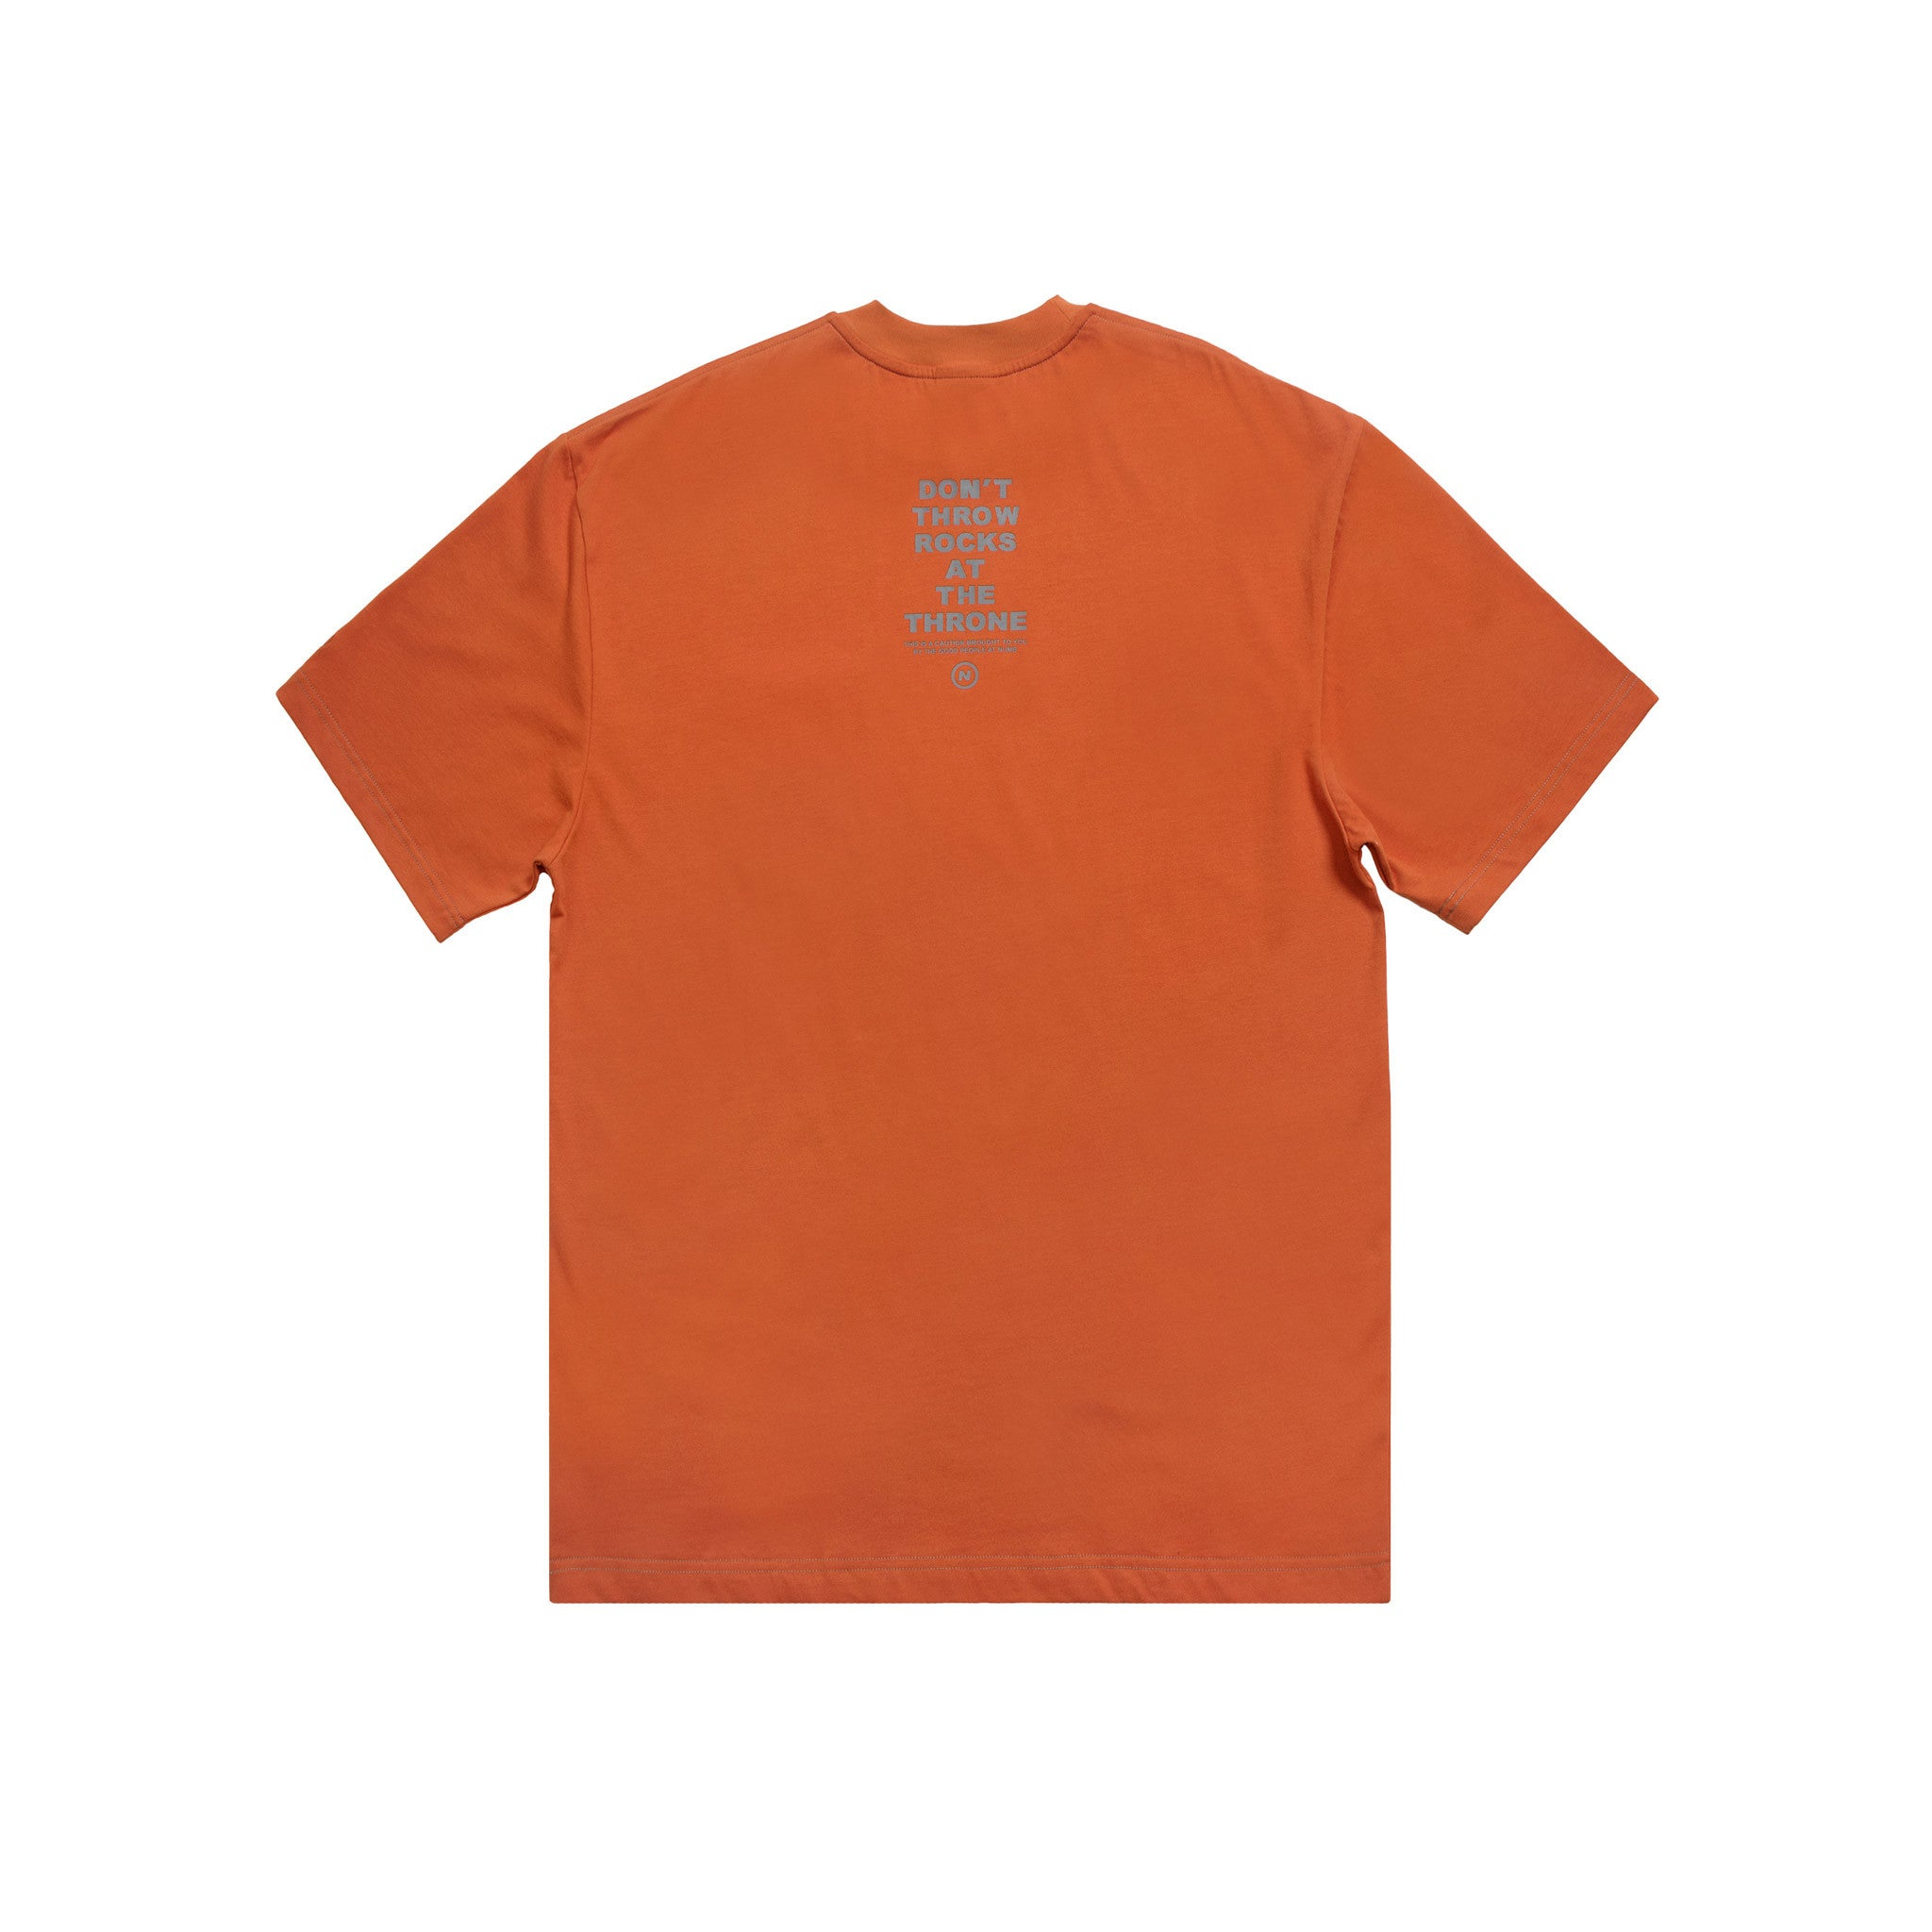 The Throne T-Shirt Numb Burnt Orange Back View